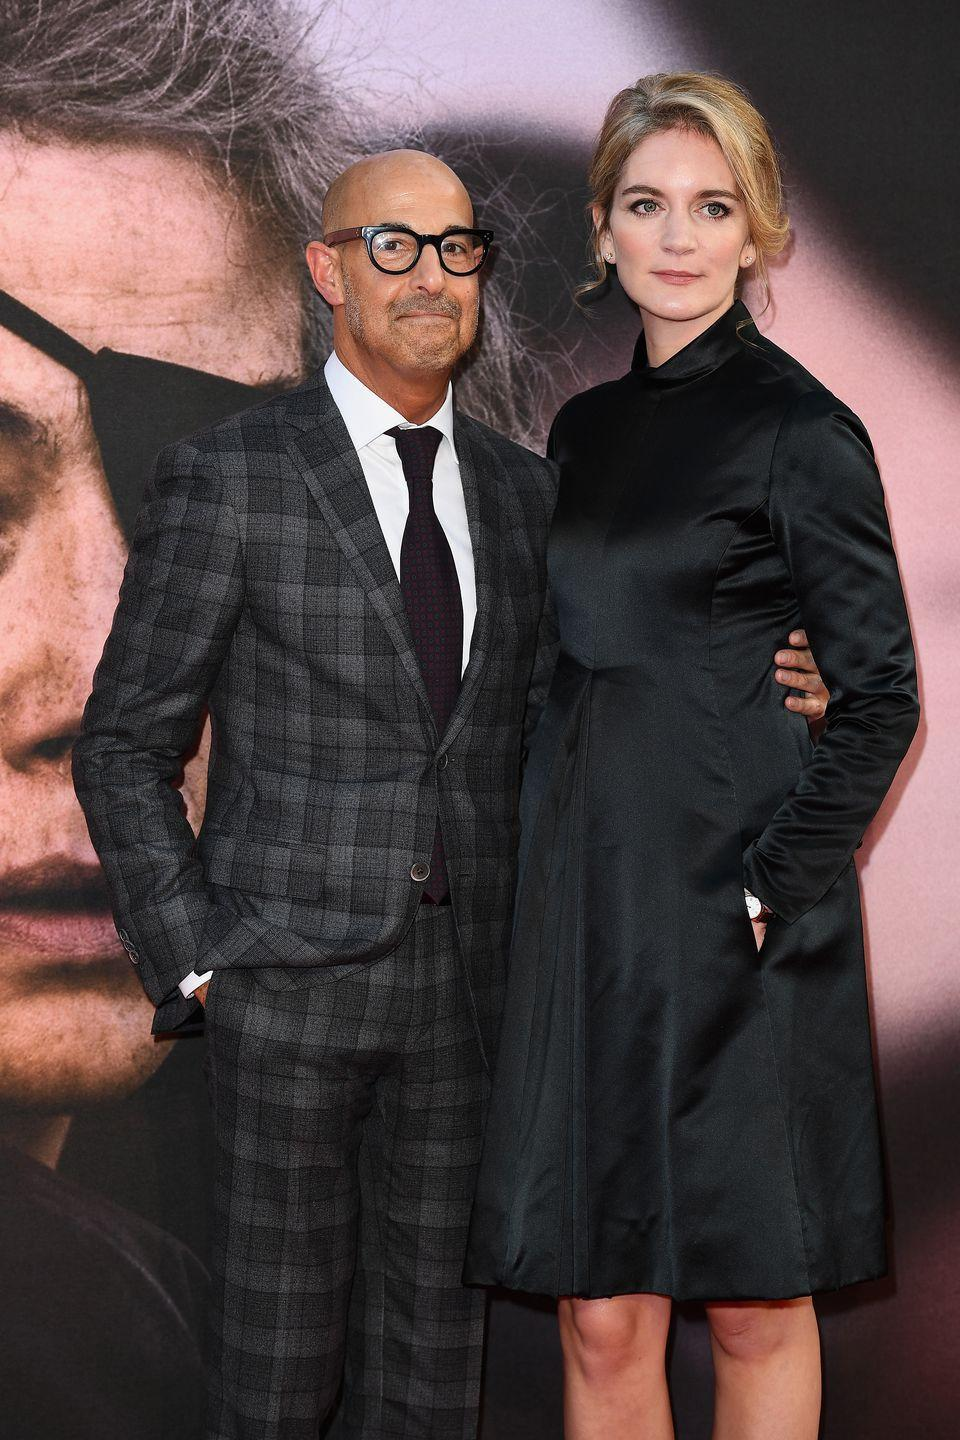 "<p>Emily Blunt later played Cupid herself, introducing her sister Felicity to her <em>The Devil Wears Prada</em> costar Stanley Tucci. <a href=""https://www.marieclaire.com/celebrity/a26114333/who-is-felicity-blunt/"" rel=""nofollow noopener"" target=""_blank"" data-ylk=""slk:Sparks flew"" class=""link rapid-noclick-resp"">Sparks flew</a> between the pair at Blunt and Krasinski's wedding, and they tied their own knot in 2012.</p>"